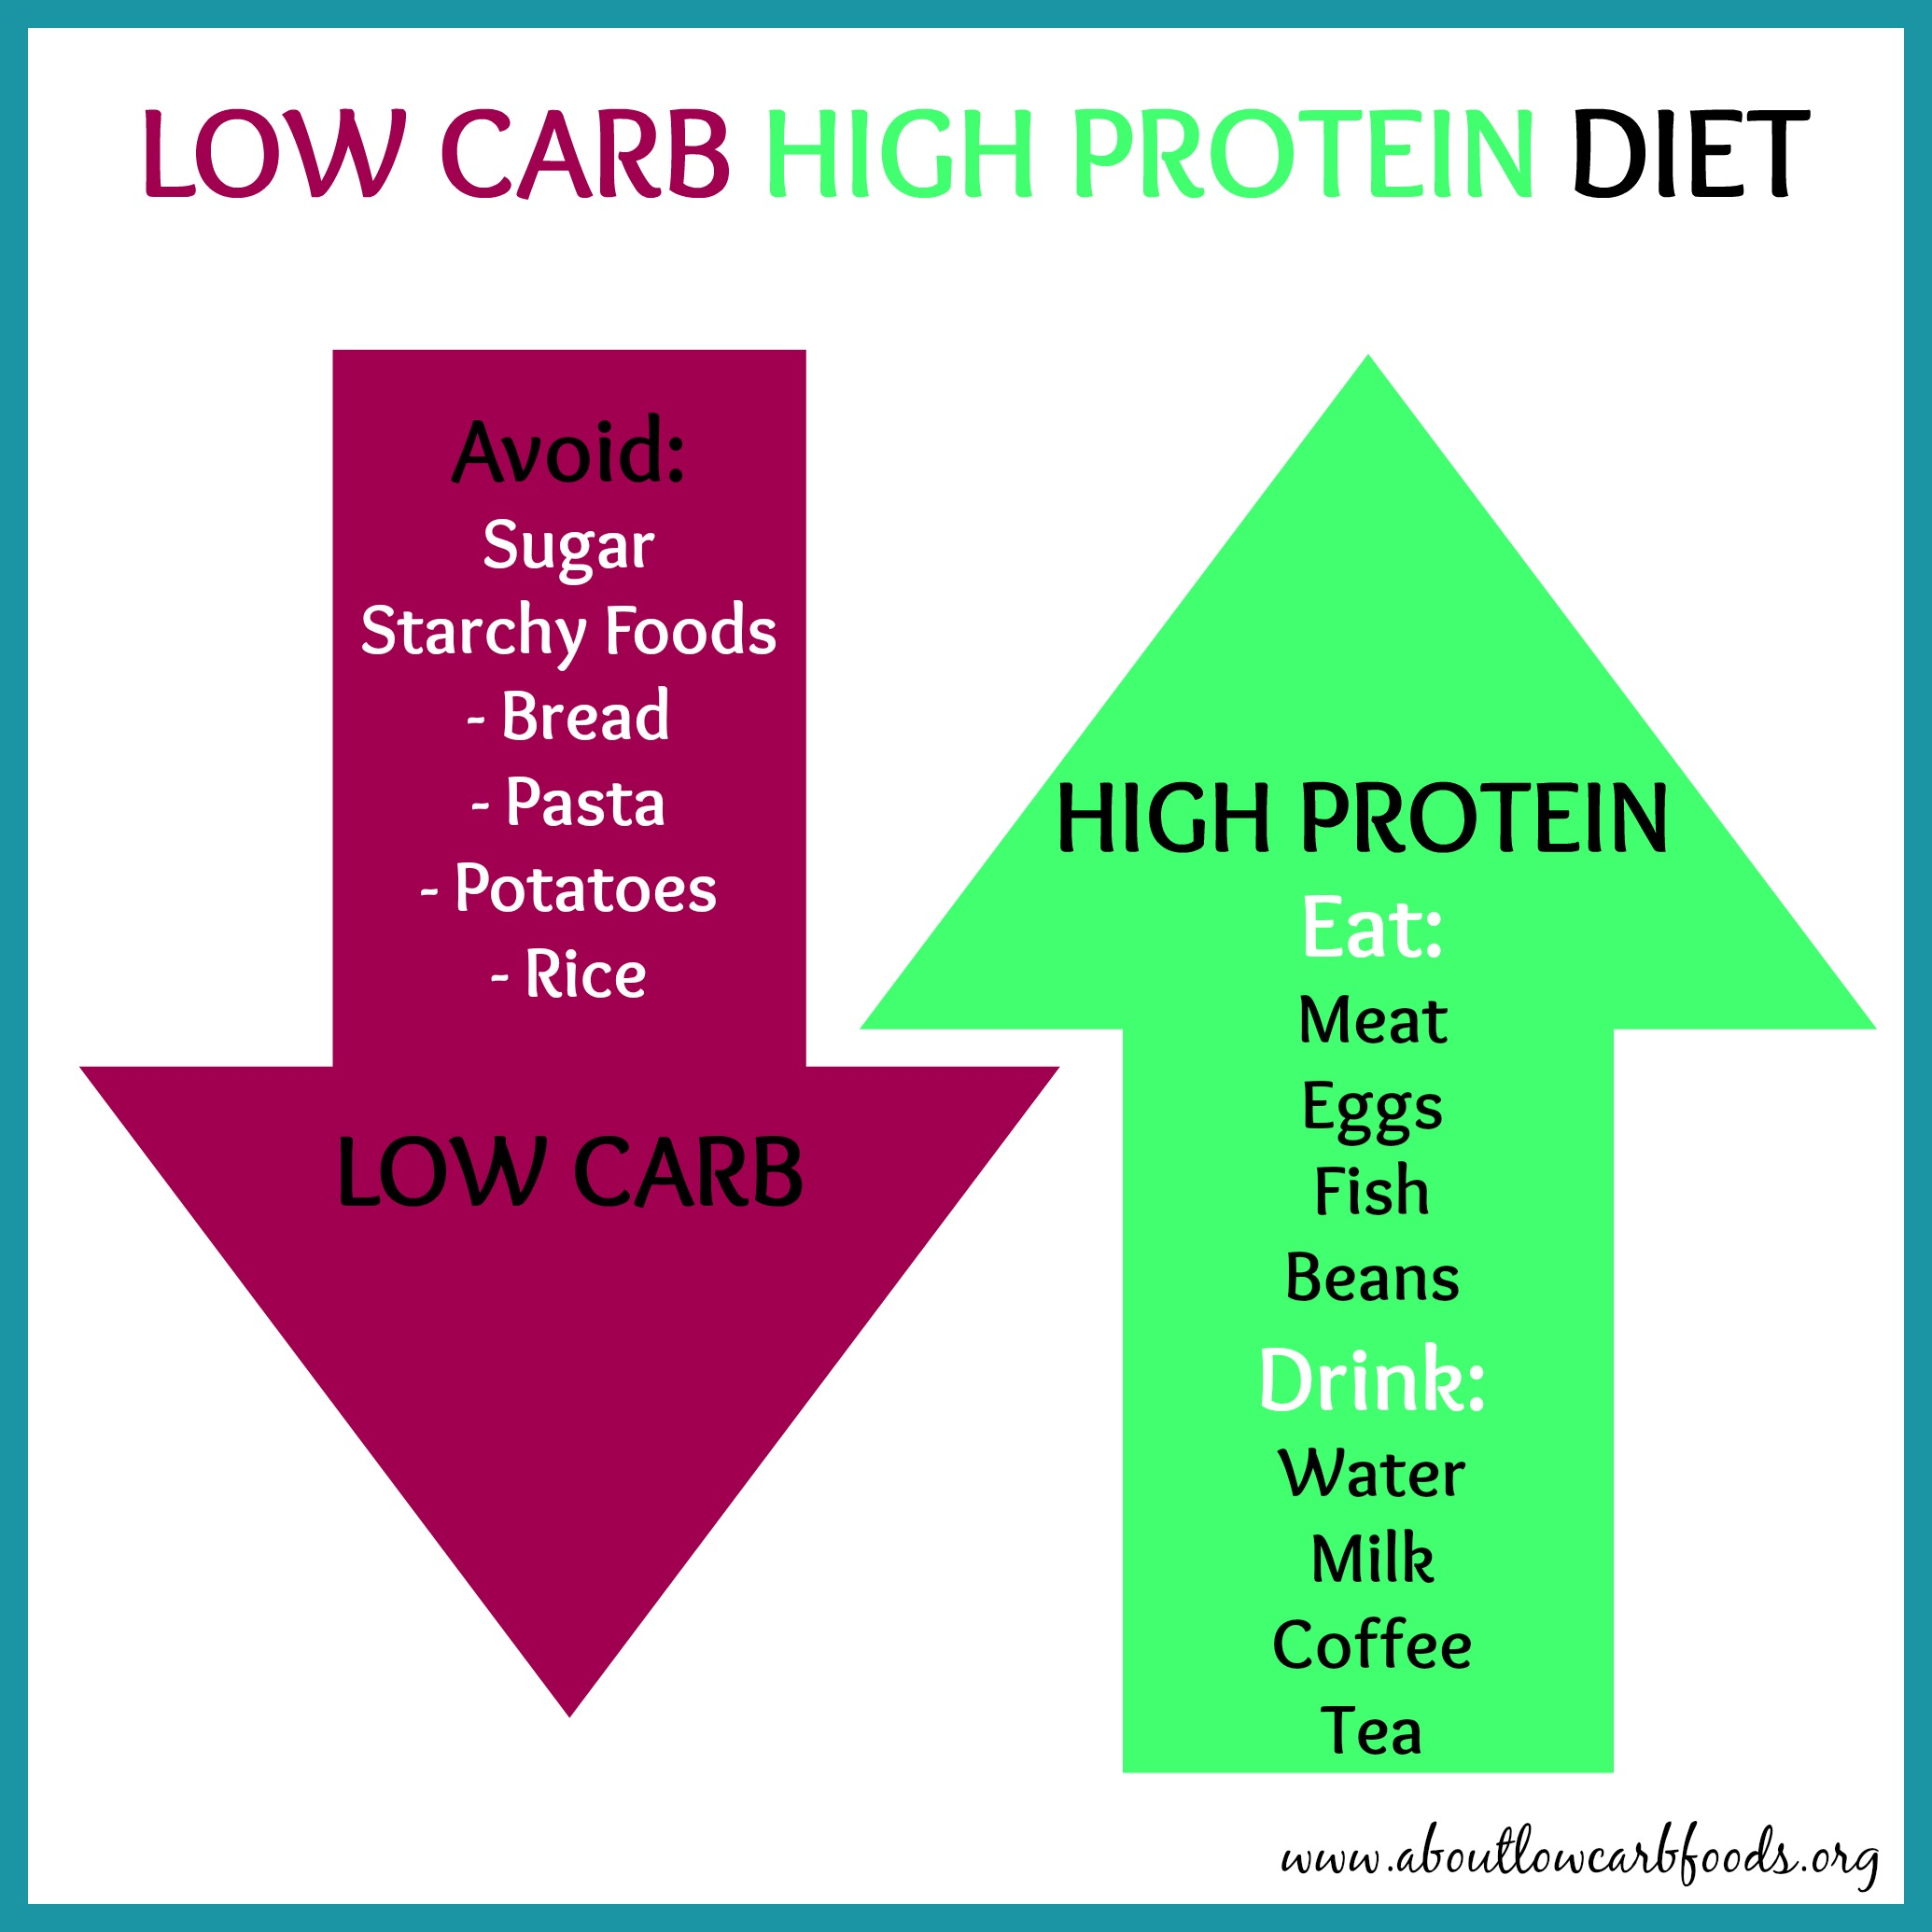 Foods High In Carbs And Fat And Low In Protein